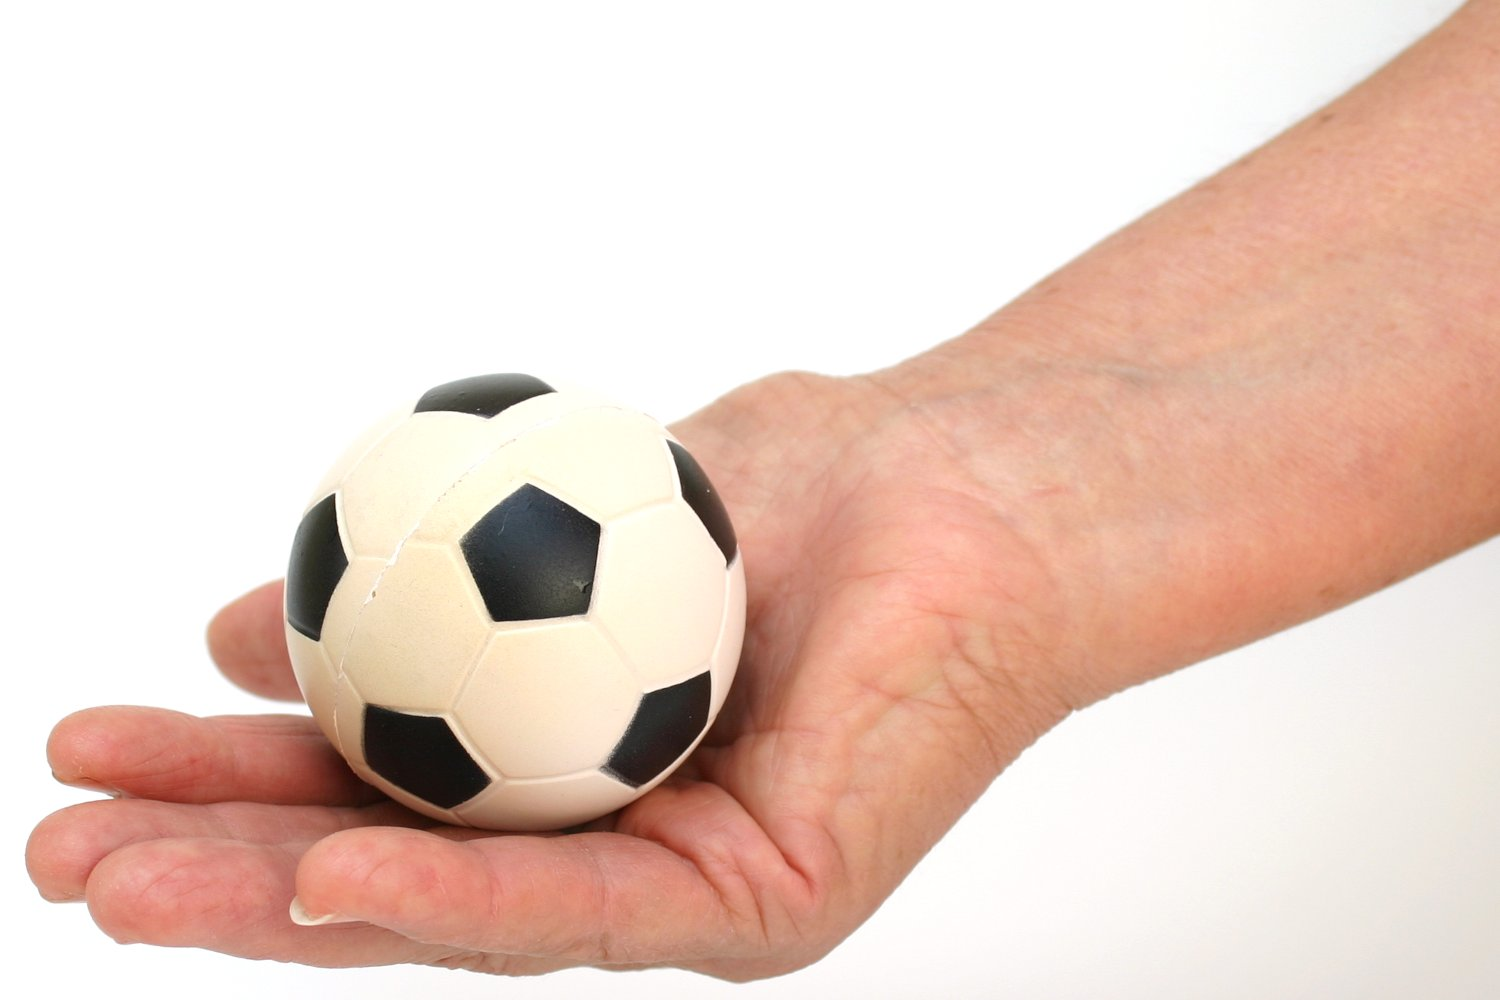 soccer ball in hand, Abstract, Single, Male, Man, HQ Photo